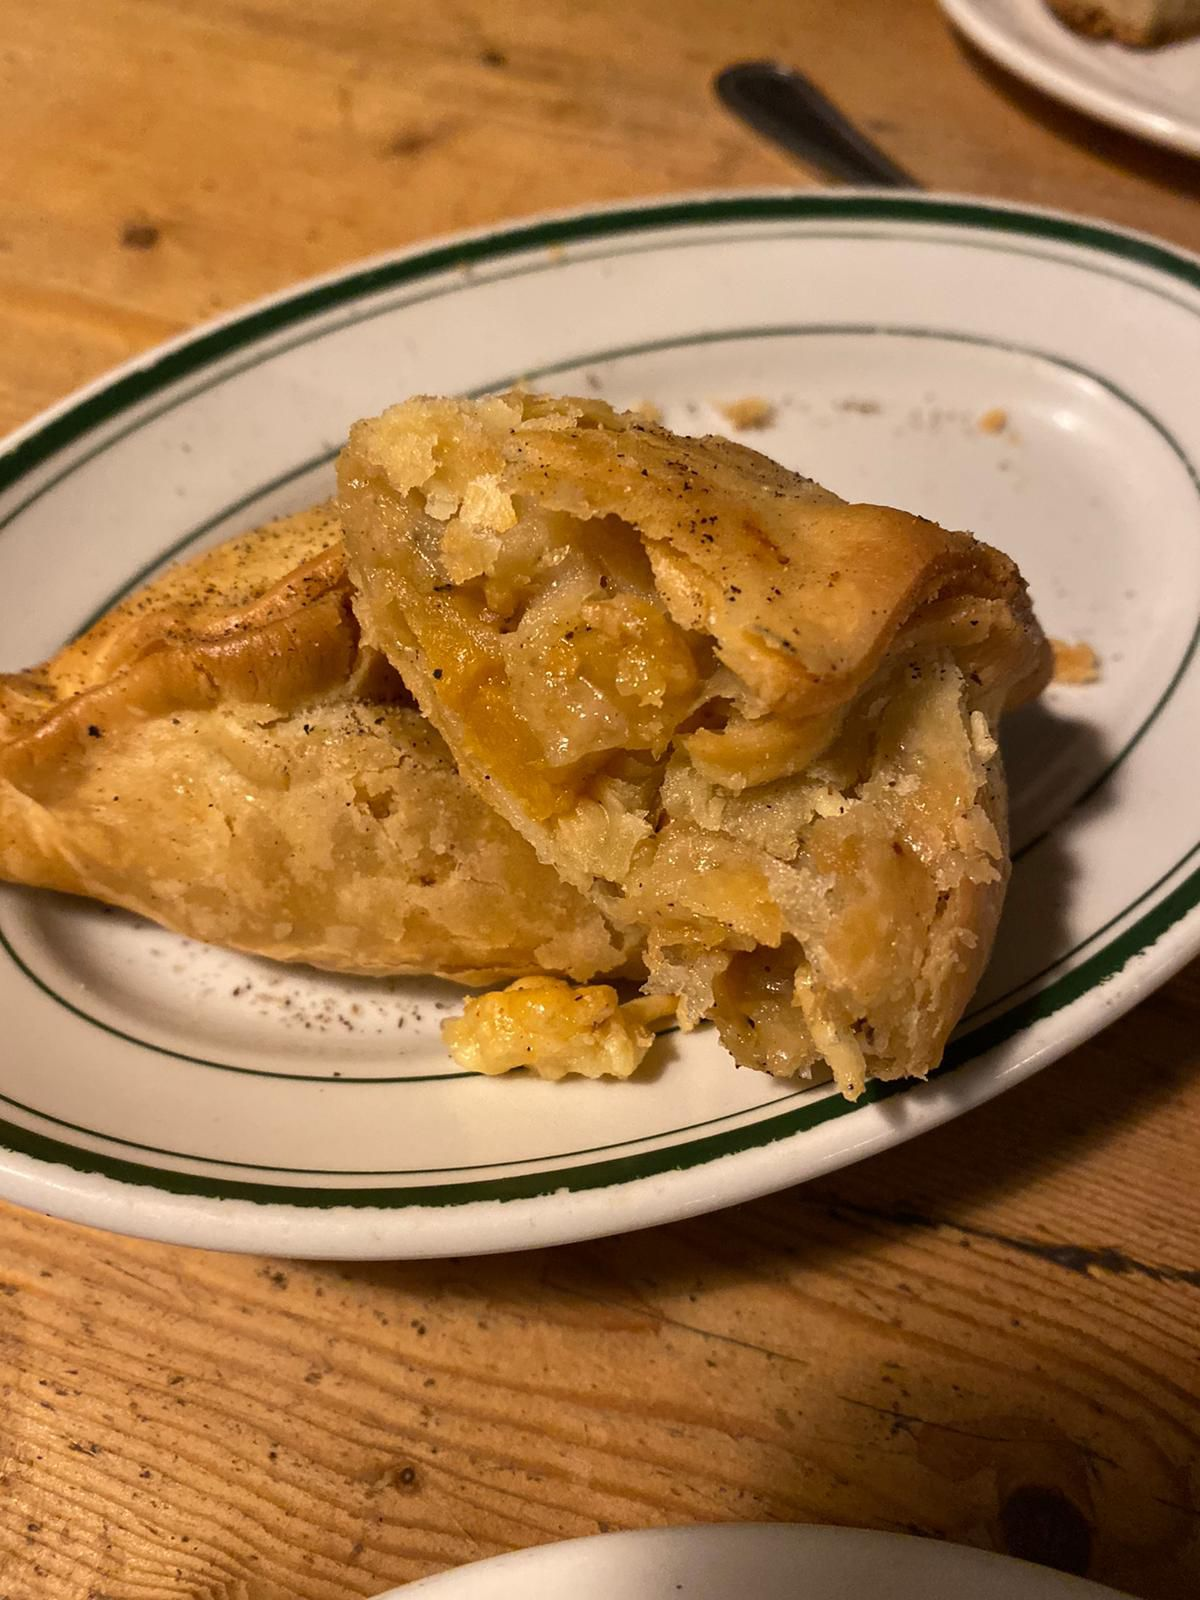 Swede and cheddar pasty at 40 Maltby Street in Bermondsey